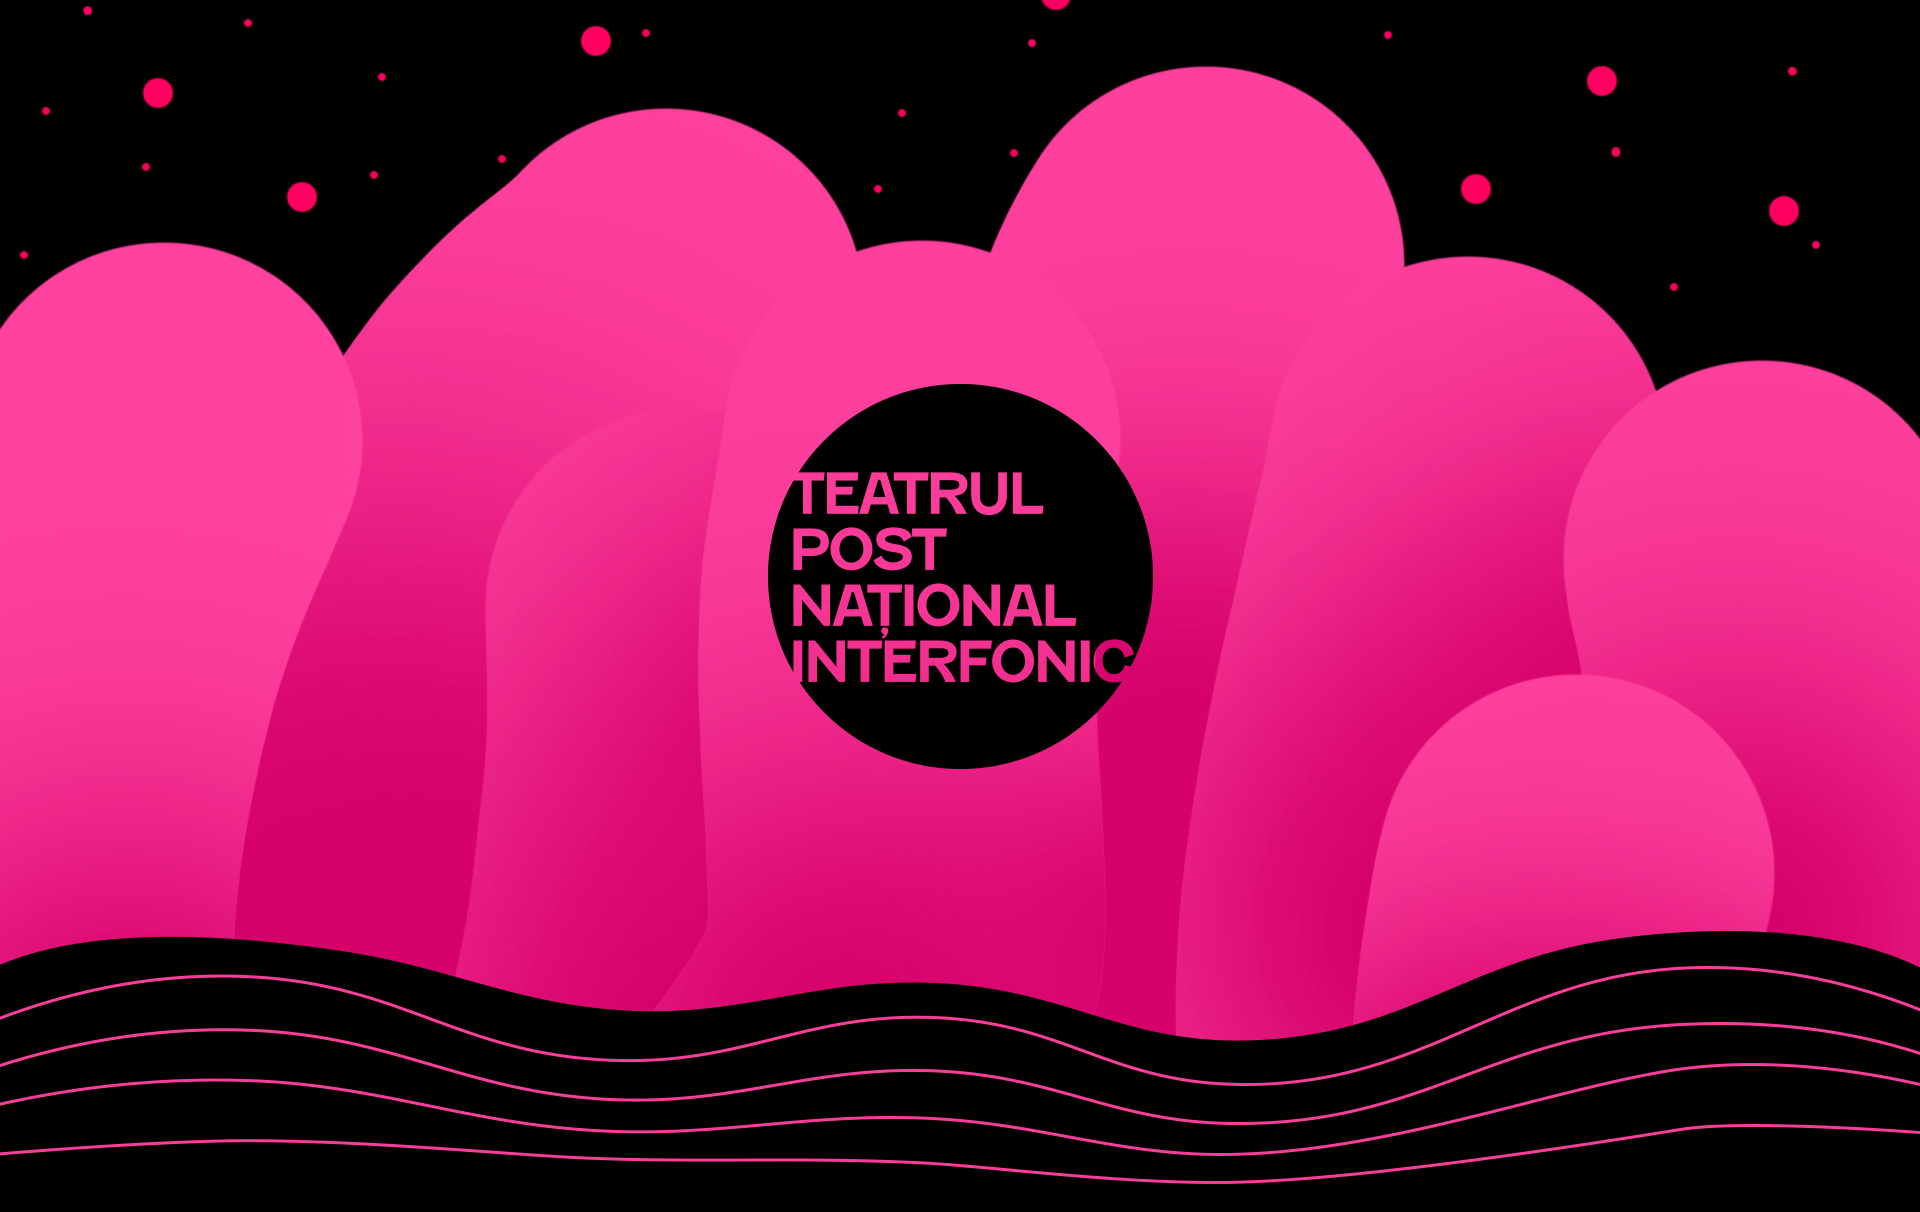 teatrul post national interfonic